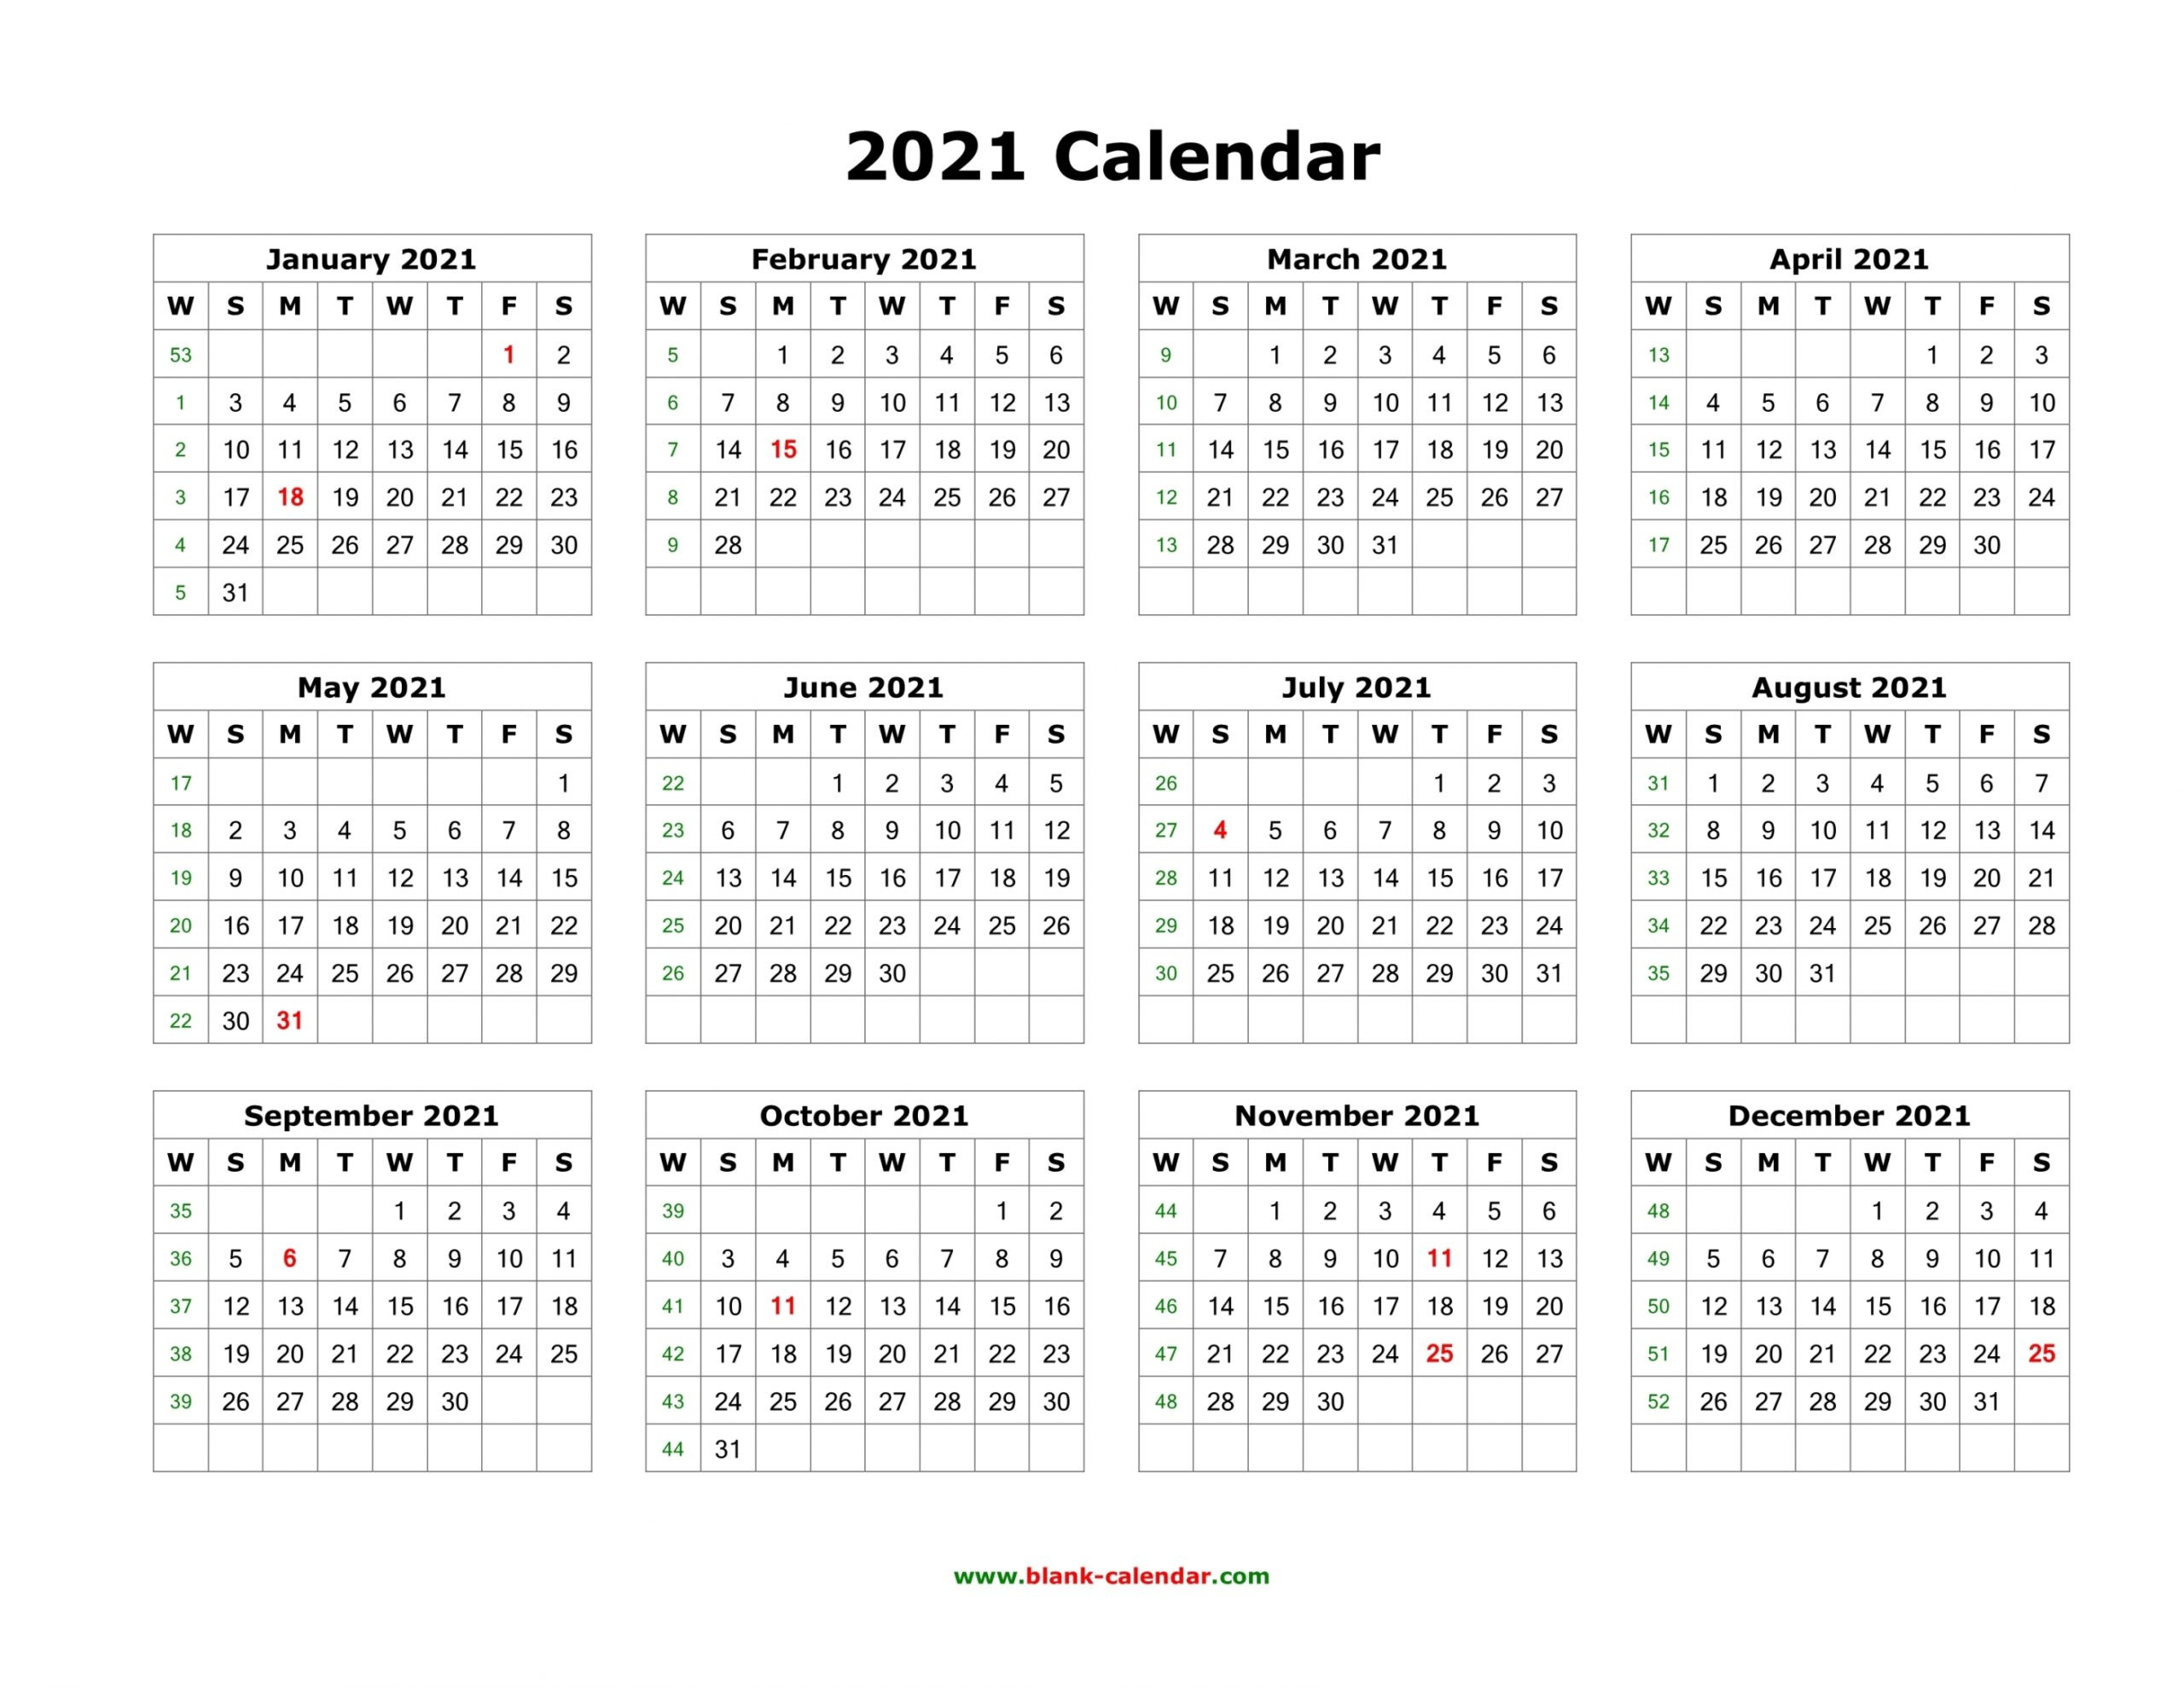 2021 Calendar One Page Template   Free Letter Templates-Calendar Template 2021 Printable Free